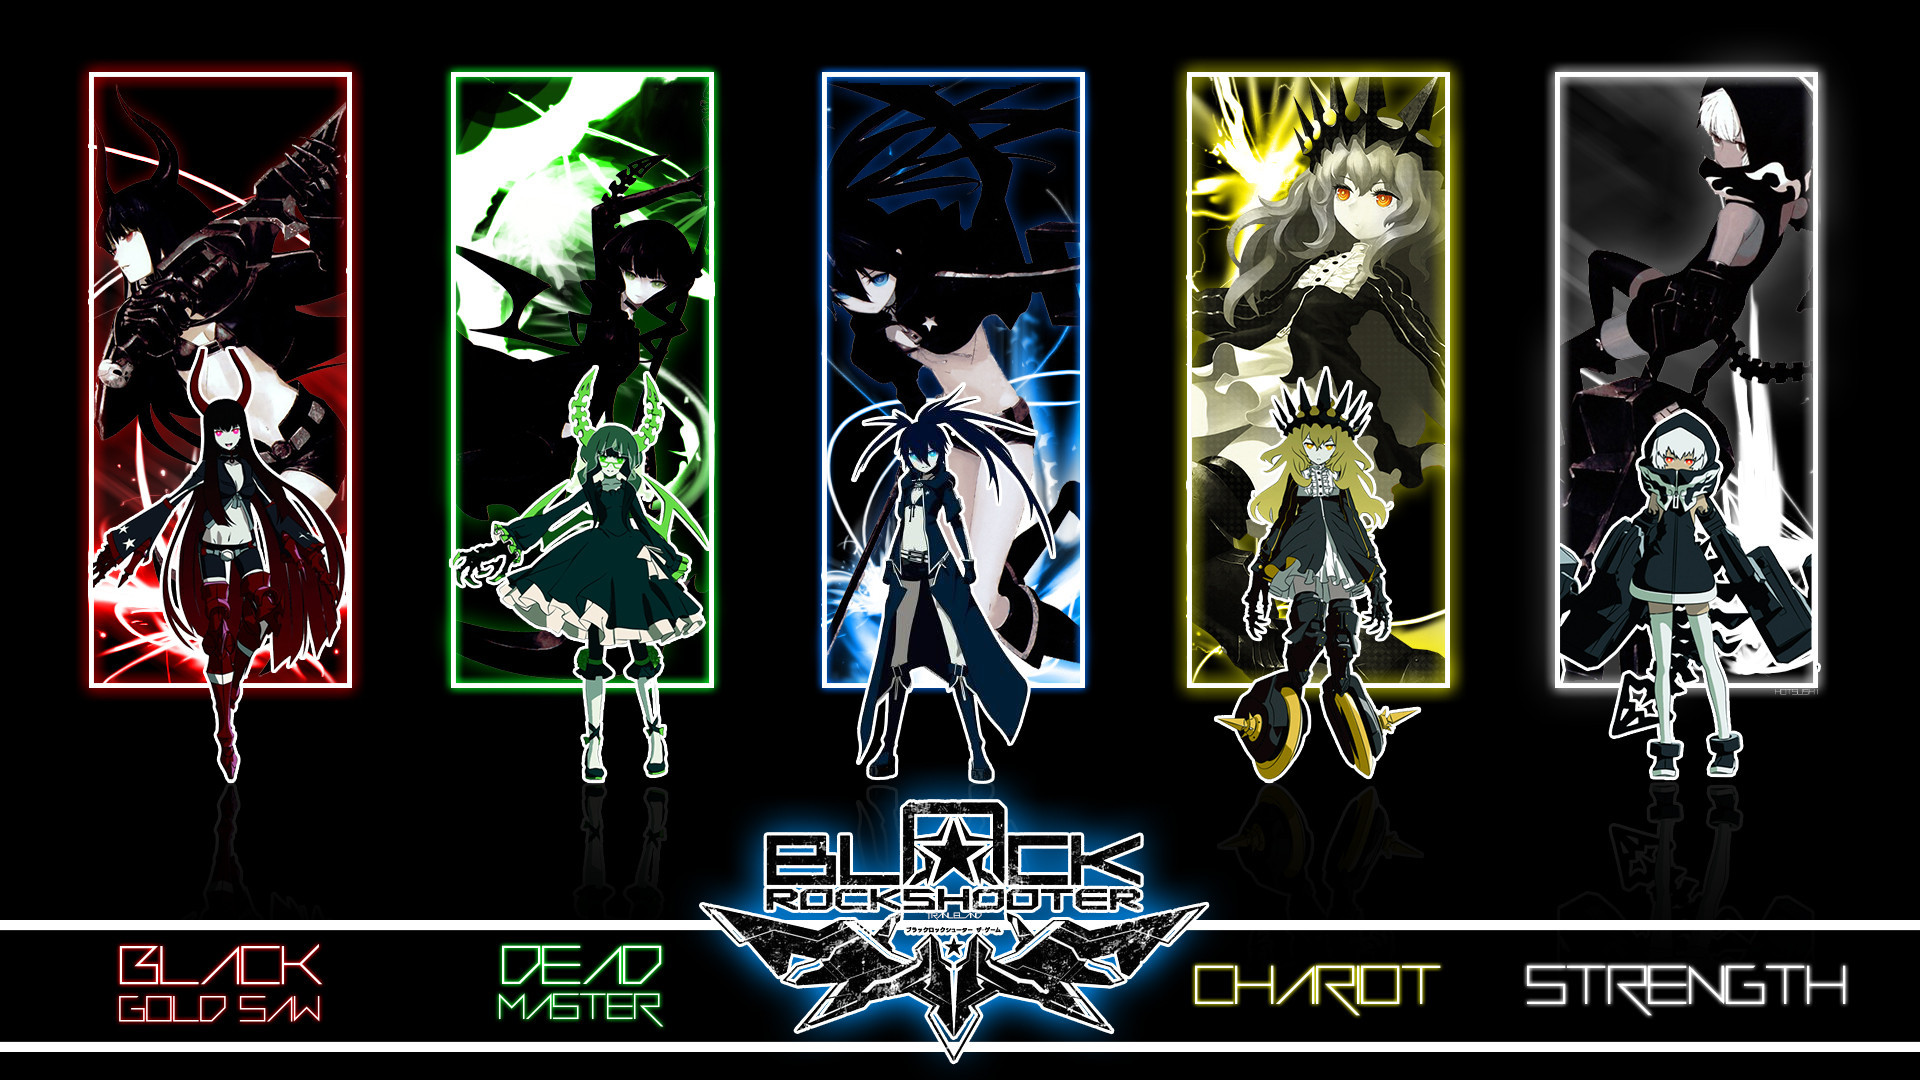 1920x1080 11 Chariot (Black Rock Shooter) HD Wallpapers | Backgrounds - Wallpaper  Abyss